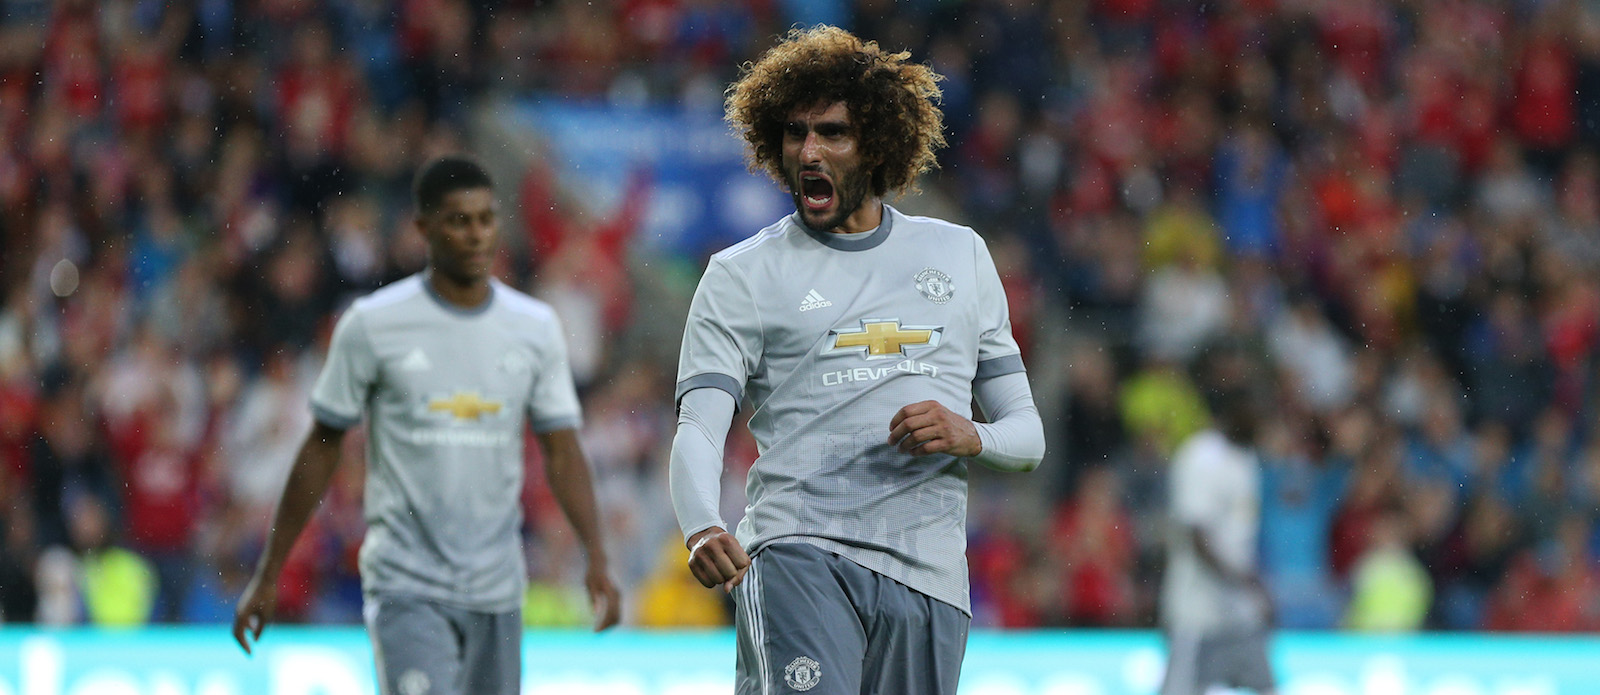 From France: Marouane Fellaini holds talks with Marseille over potential move